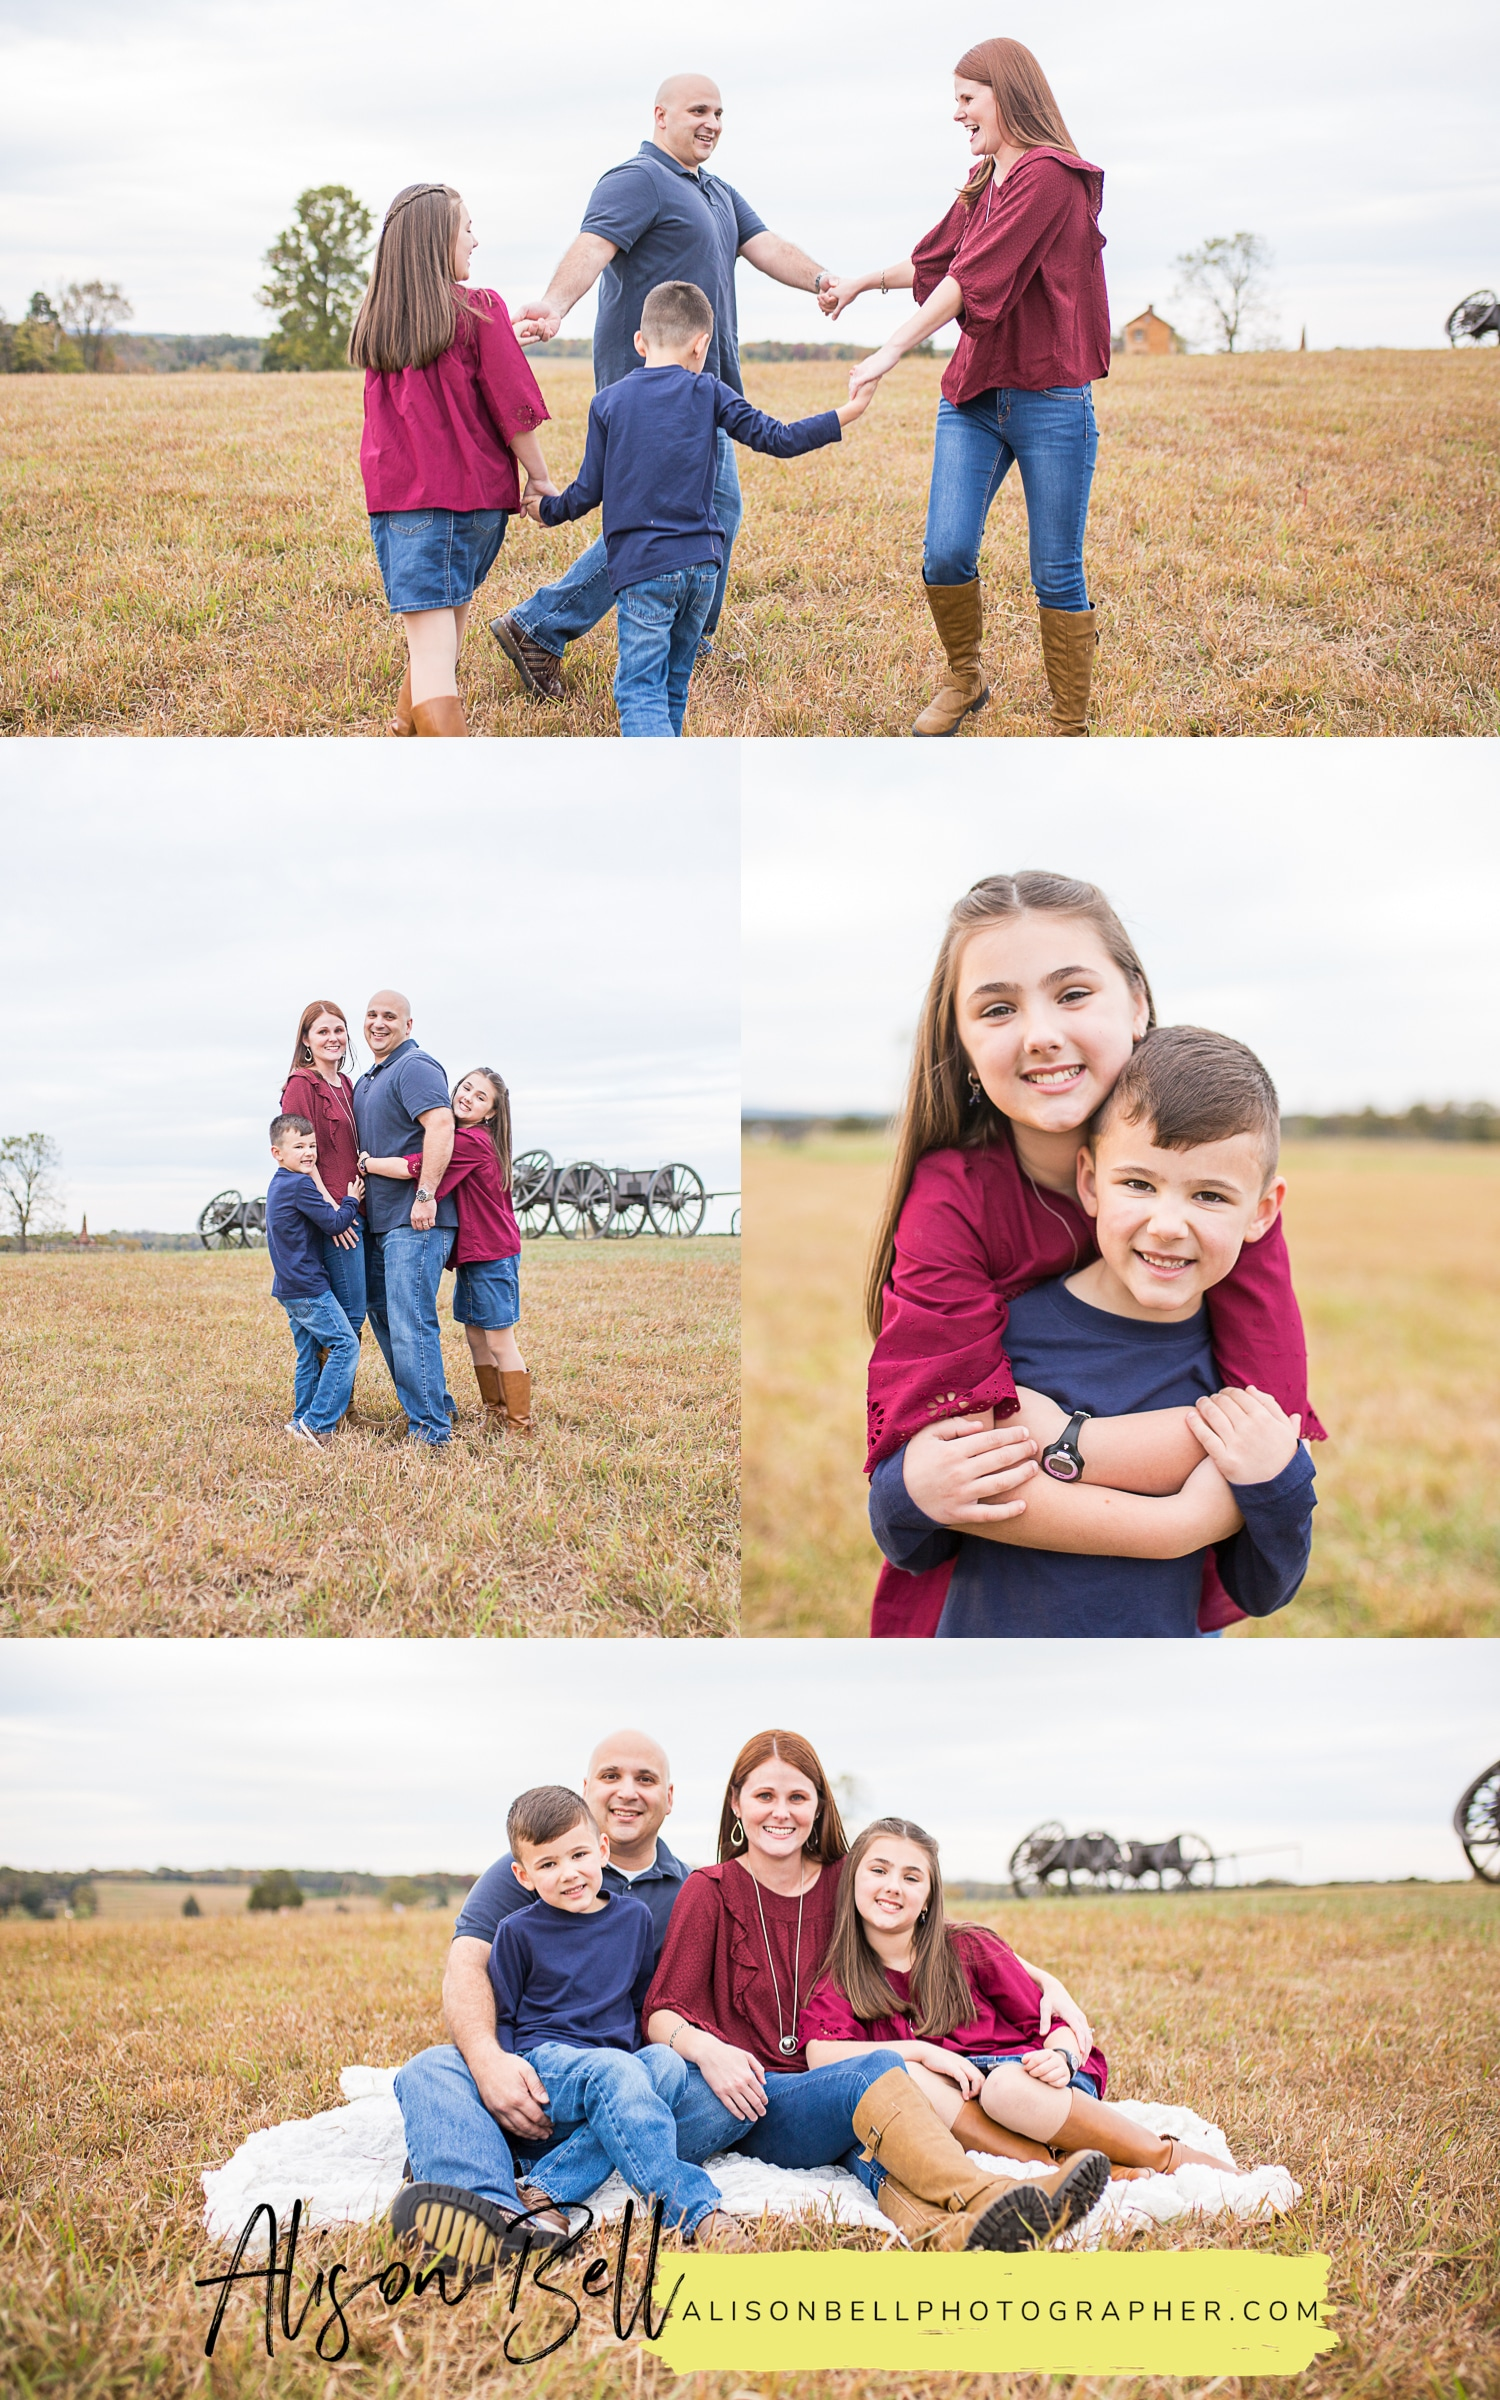 Northern virginia family photos in Manassas, VA at Manassas National Battlefield by Alison Bell, Photographer based in Quantico